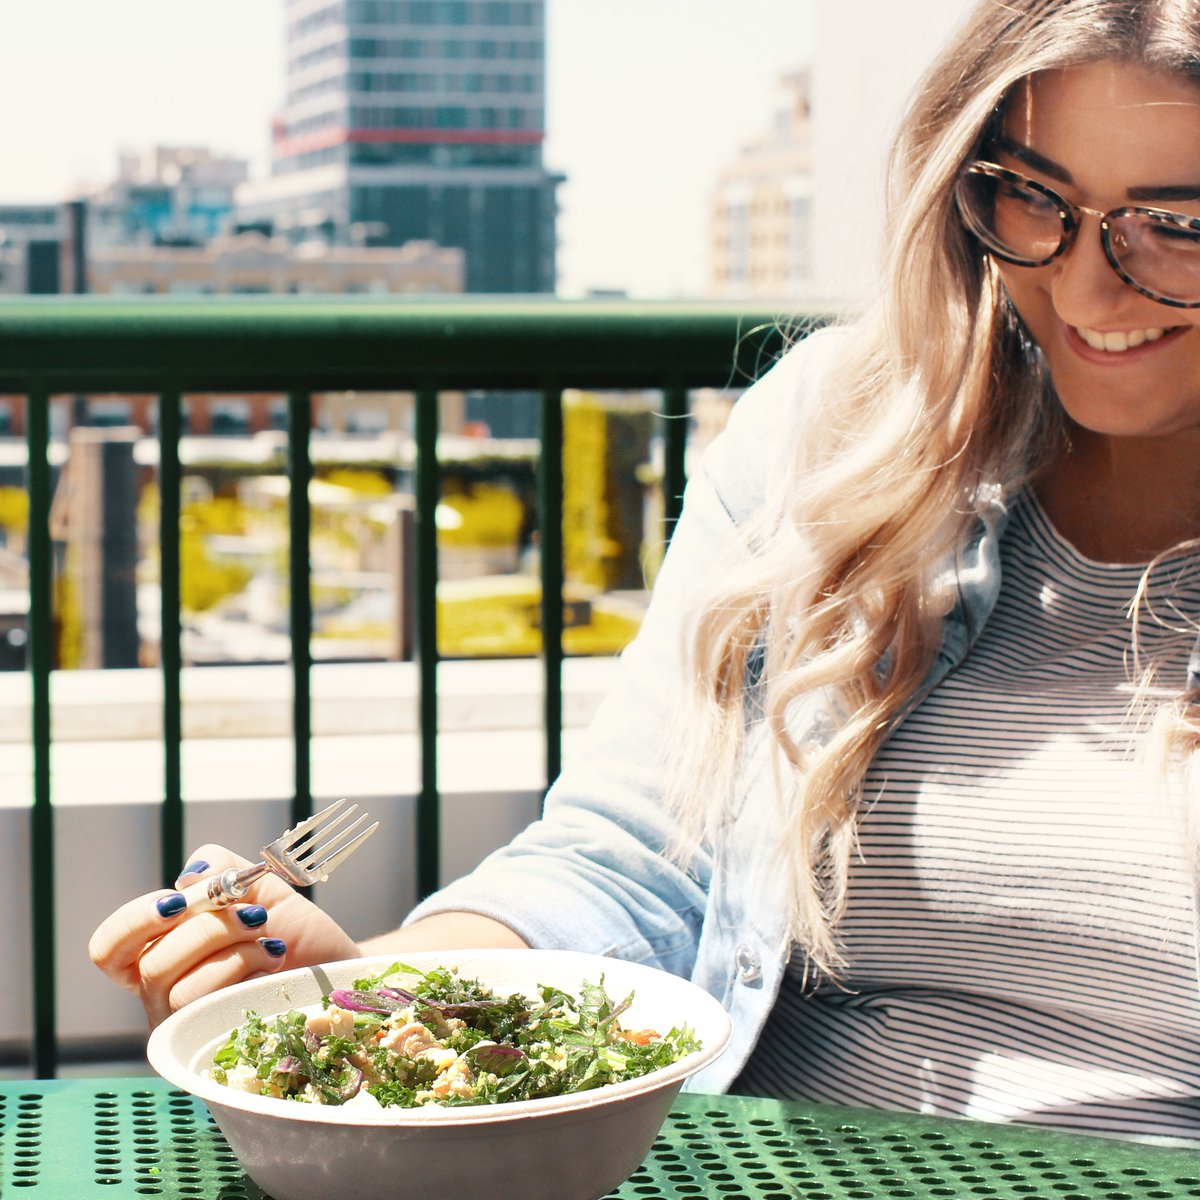 freshii owen sound